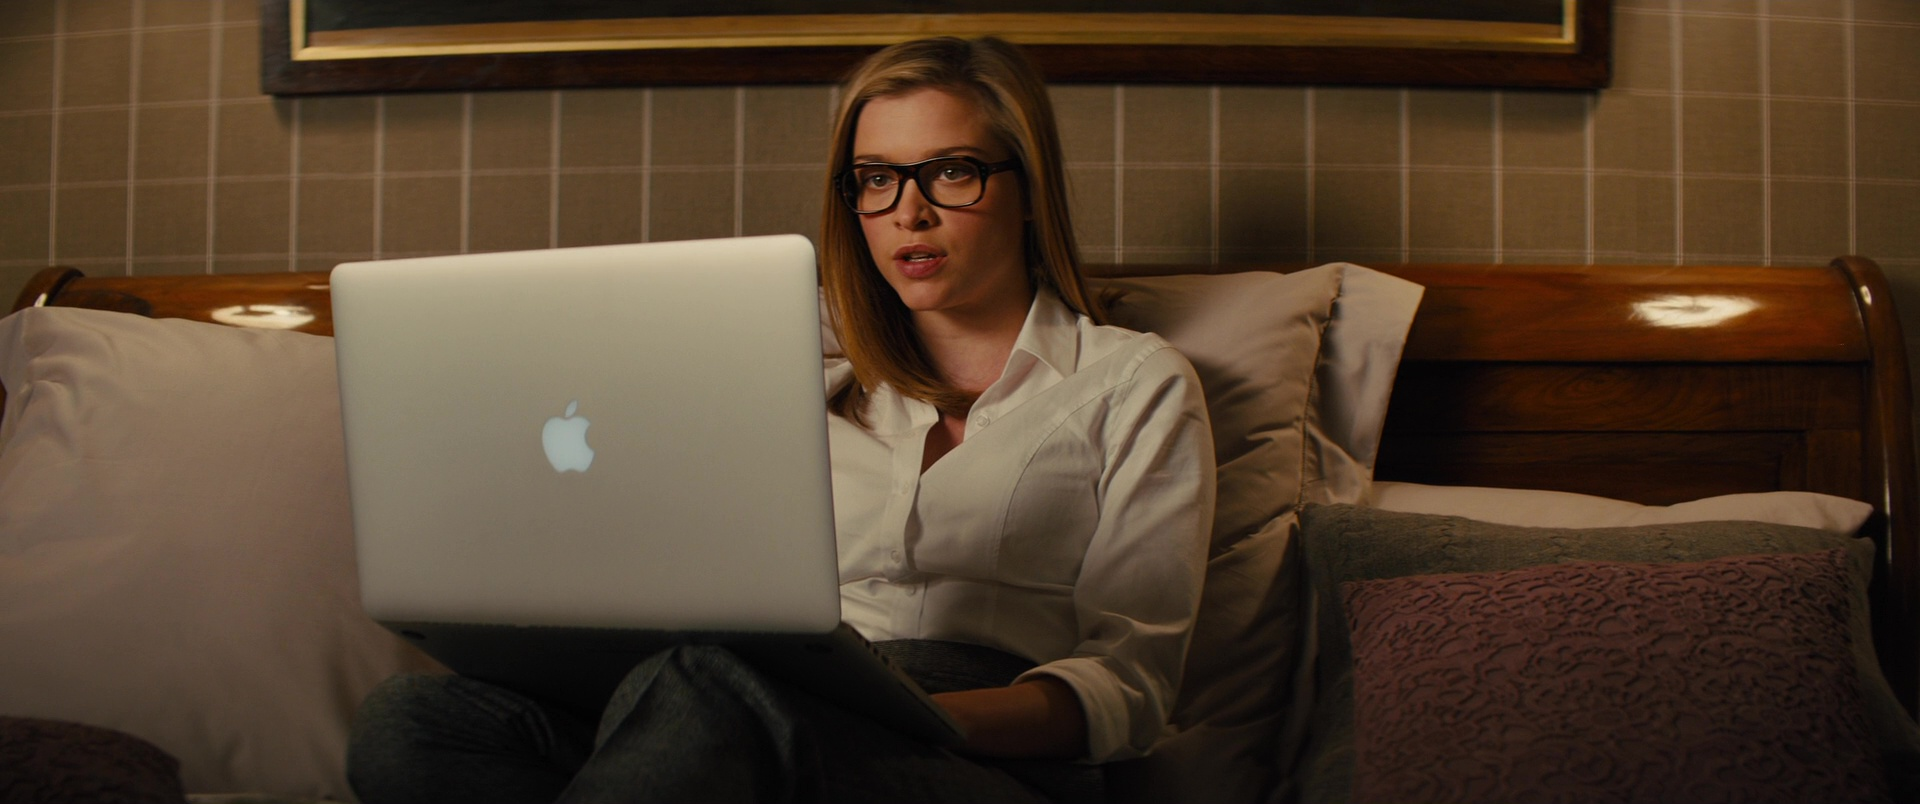 Sophie Cookson Picture 1: Apple MacBook Pro Notebook Used By Sophie Cookson In